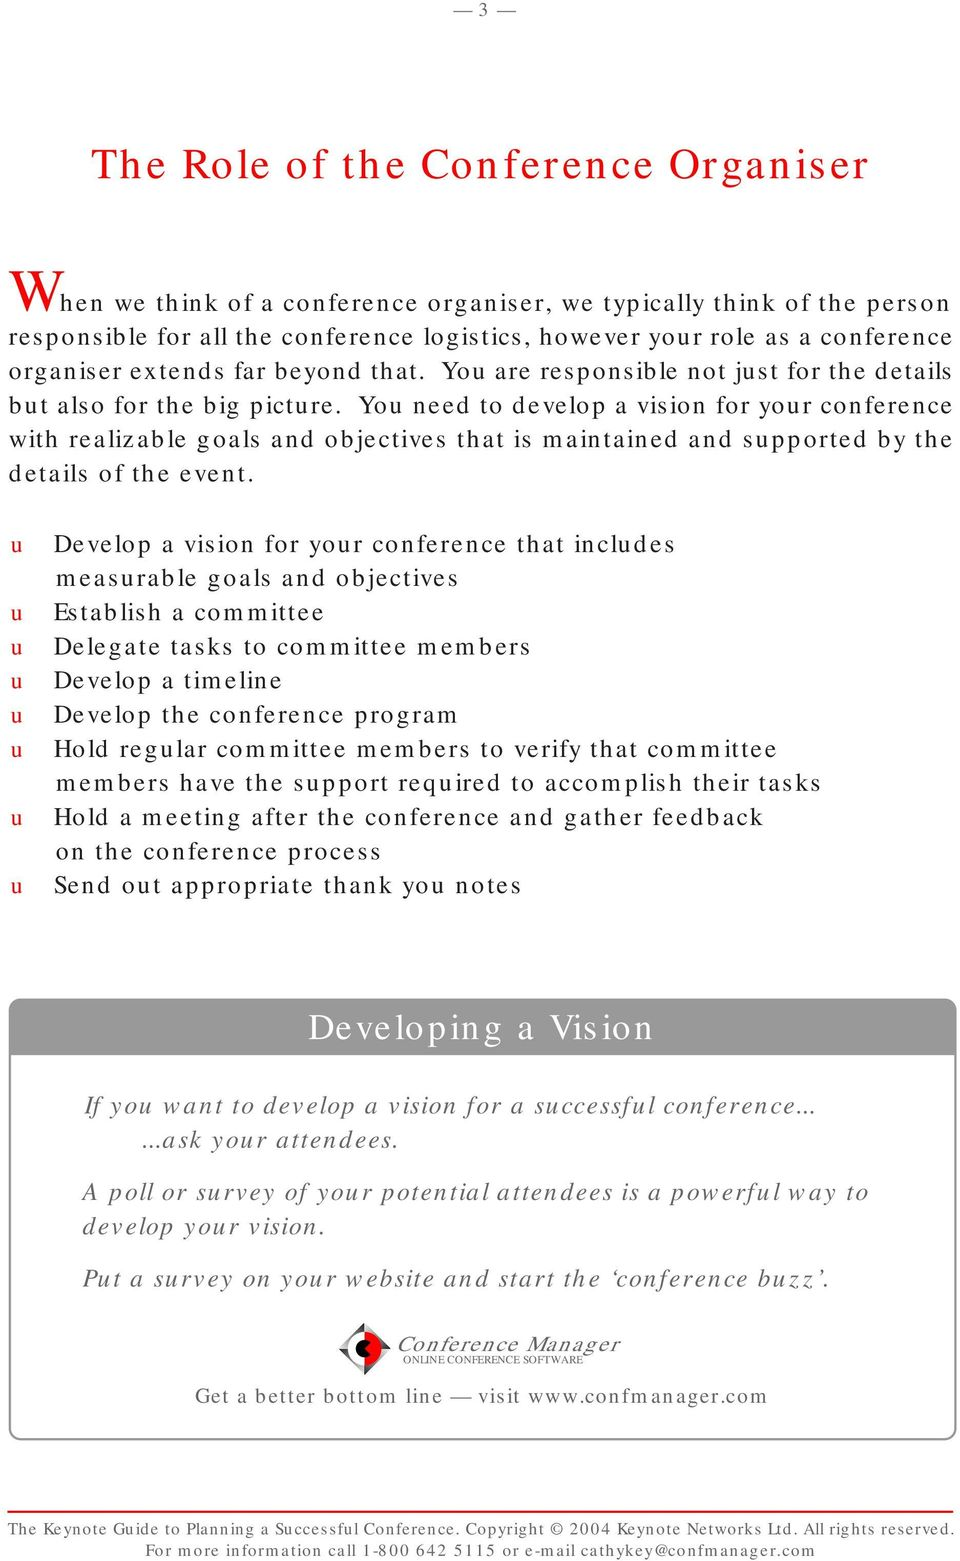 Yo need to develop a vision for yor conference with realizable goals and objectives that is maintained and spported by the details of the event.